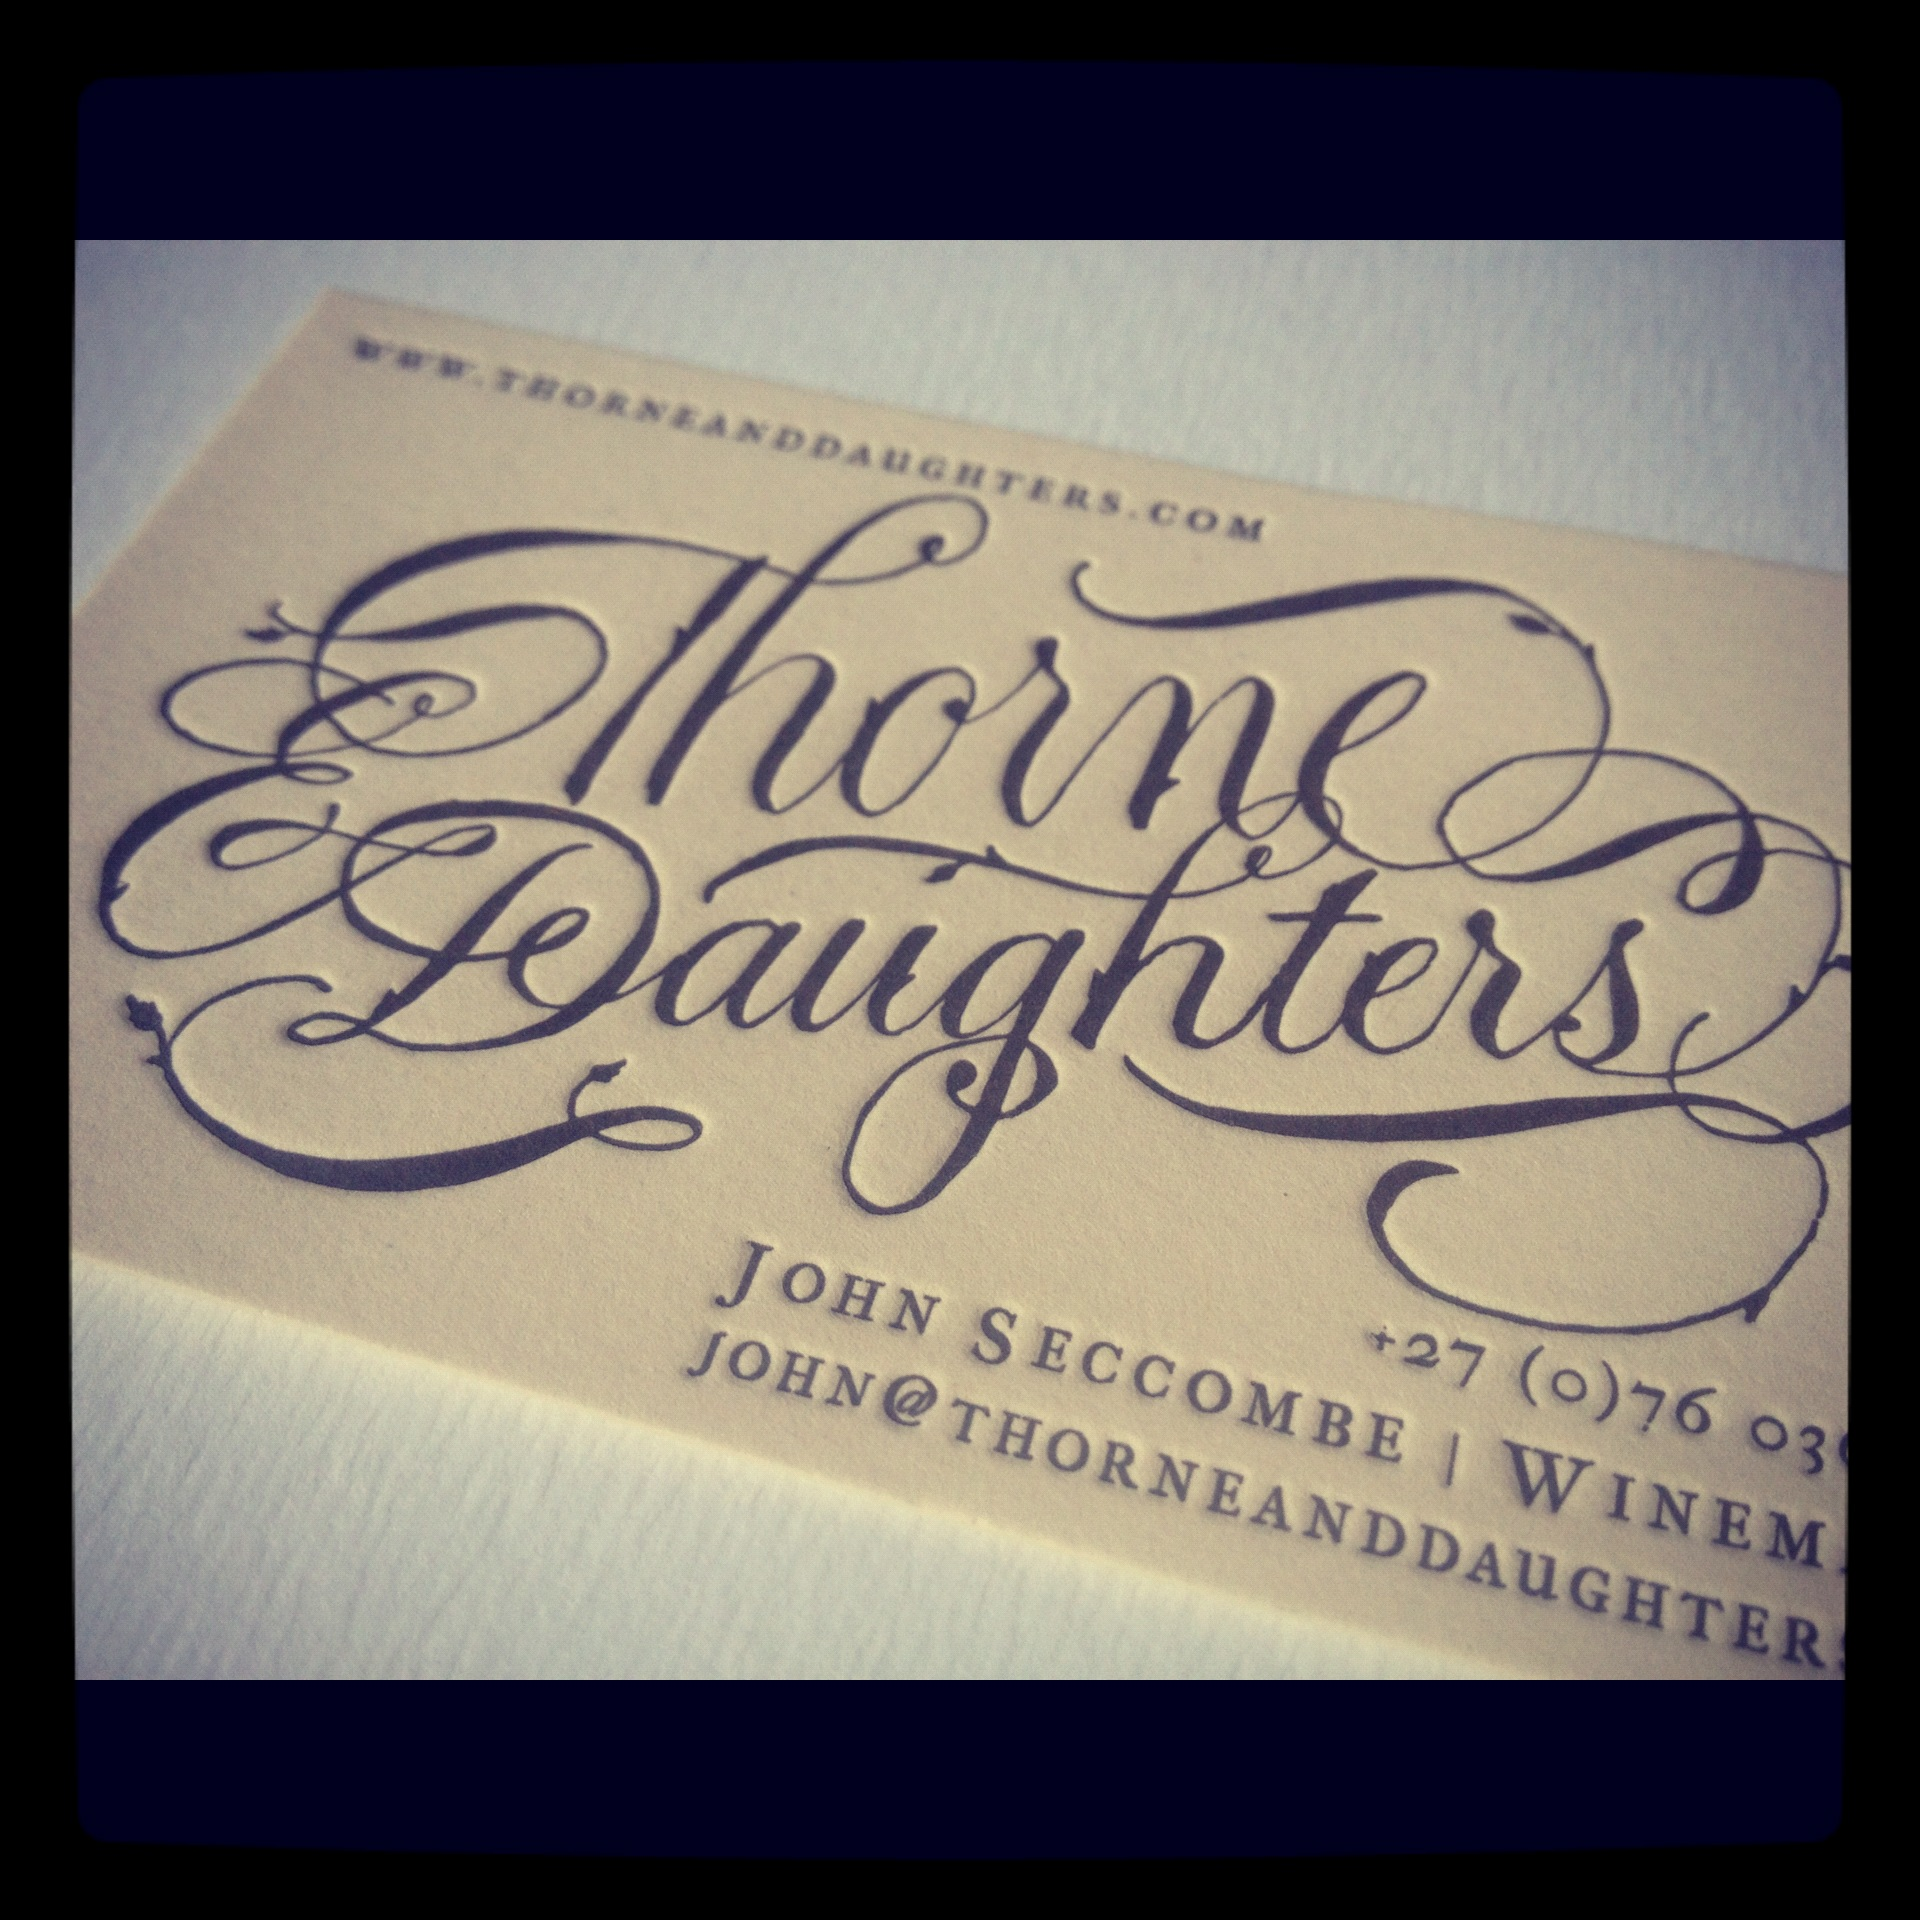 letterpressed-business-cards-1